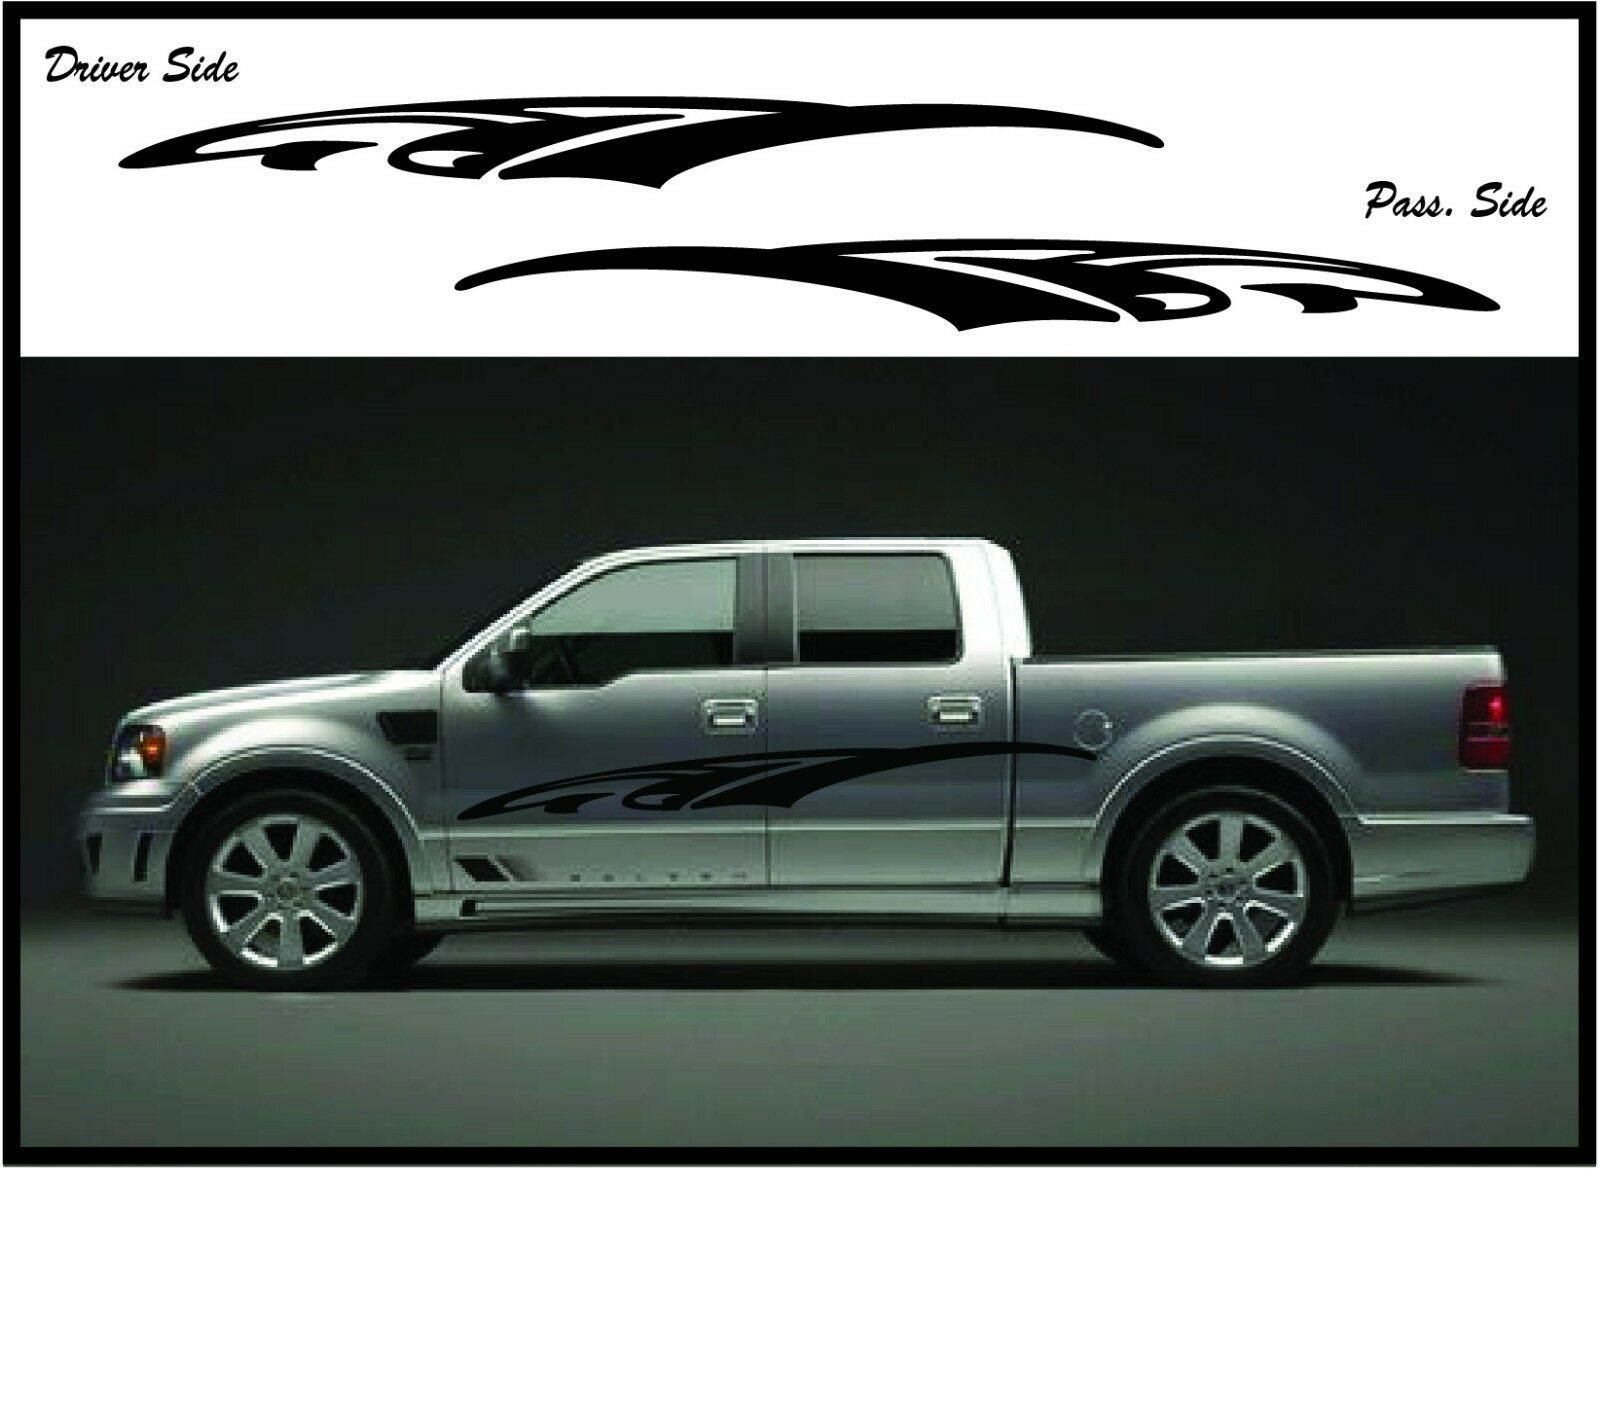 Details about truck side stripe kit car suv racing sport decals dodge fits all trucks